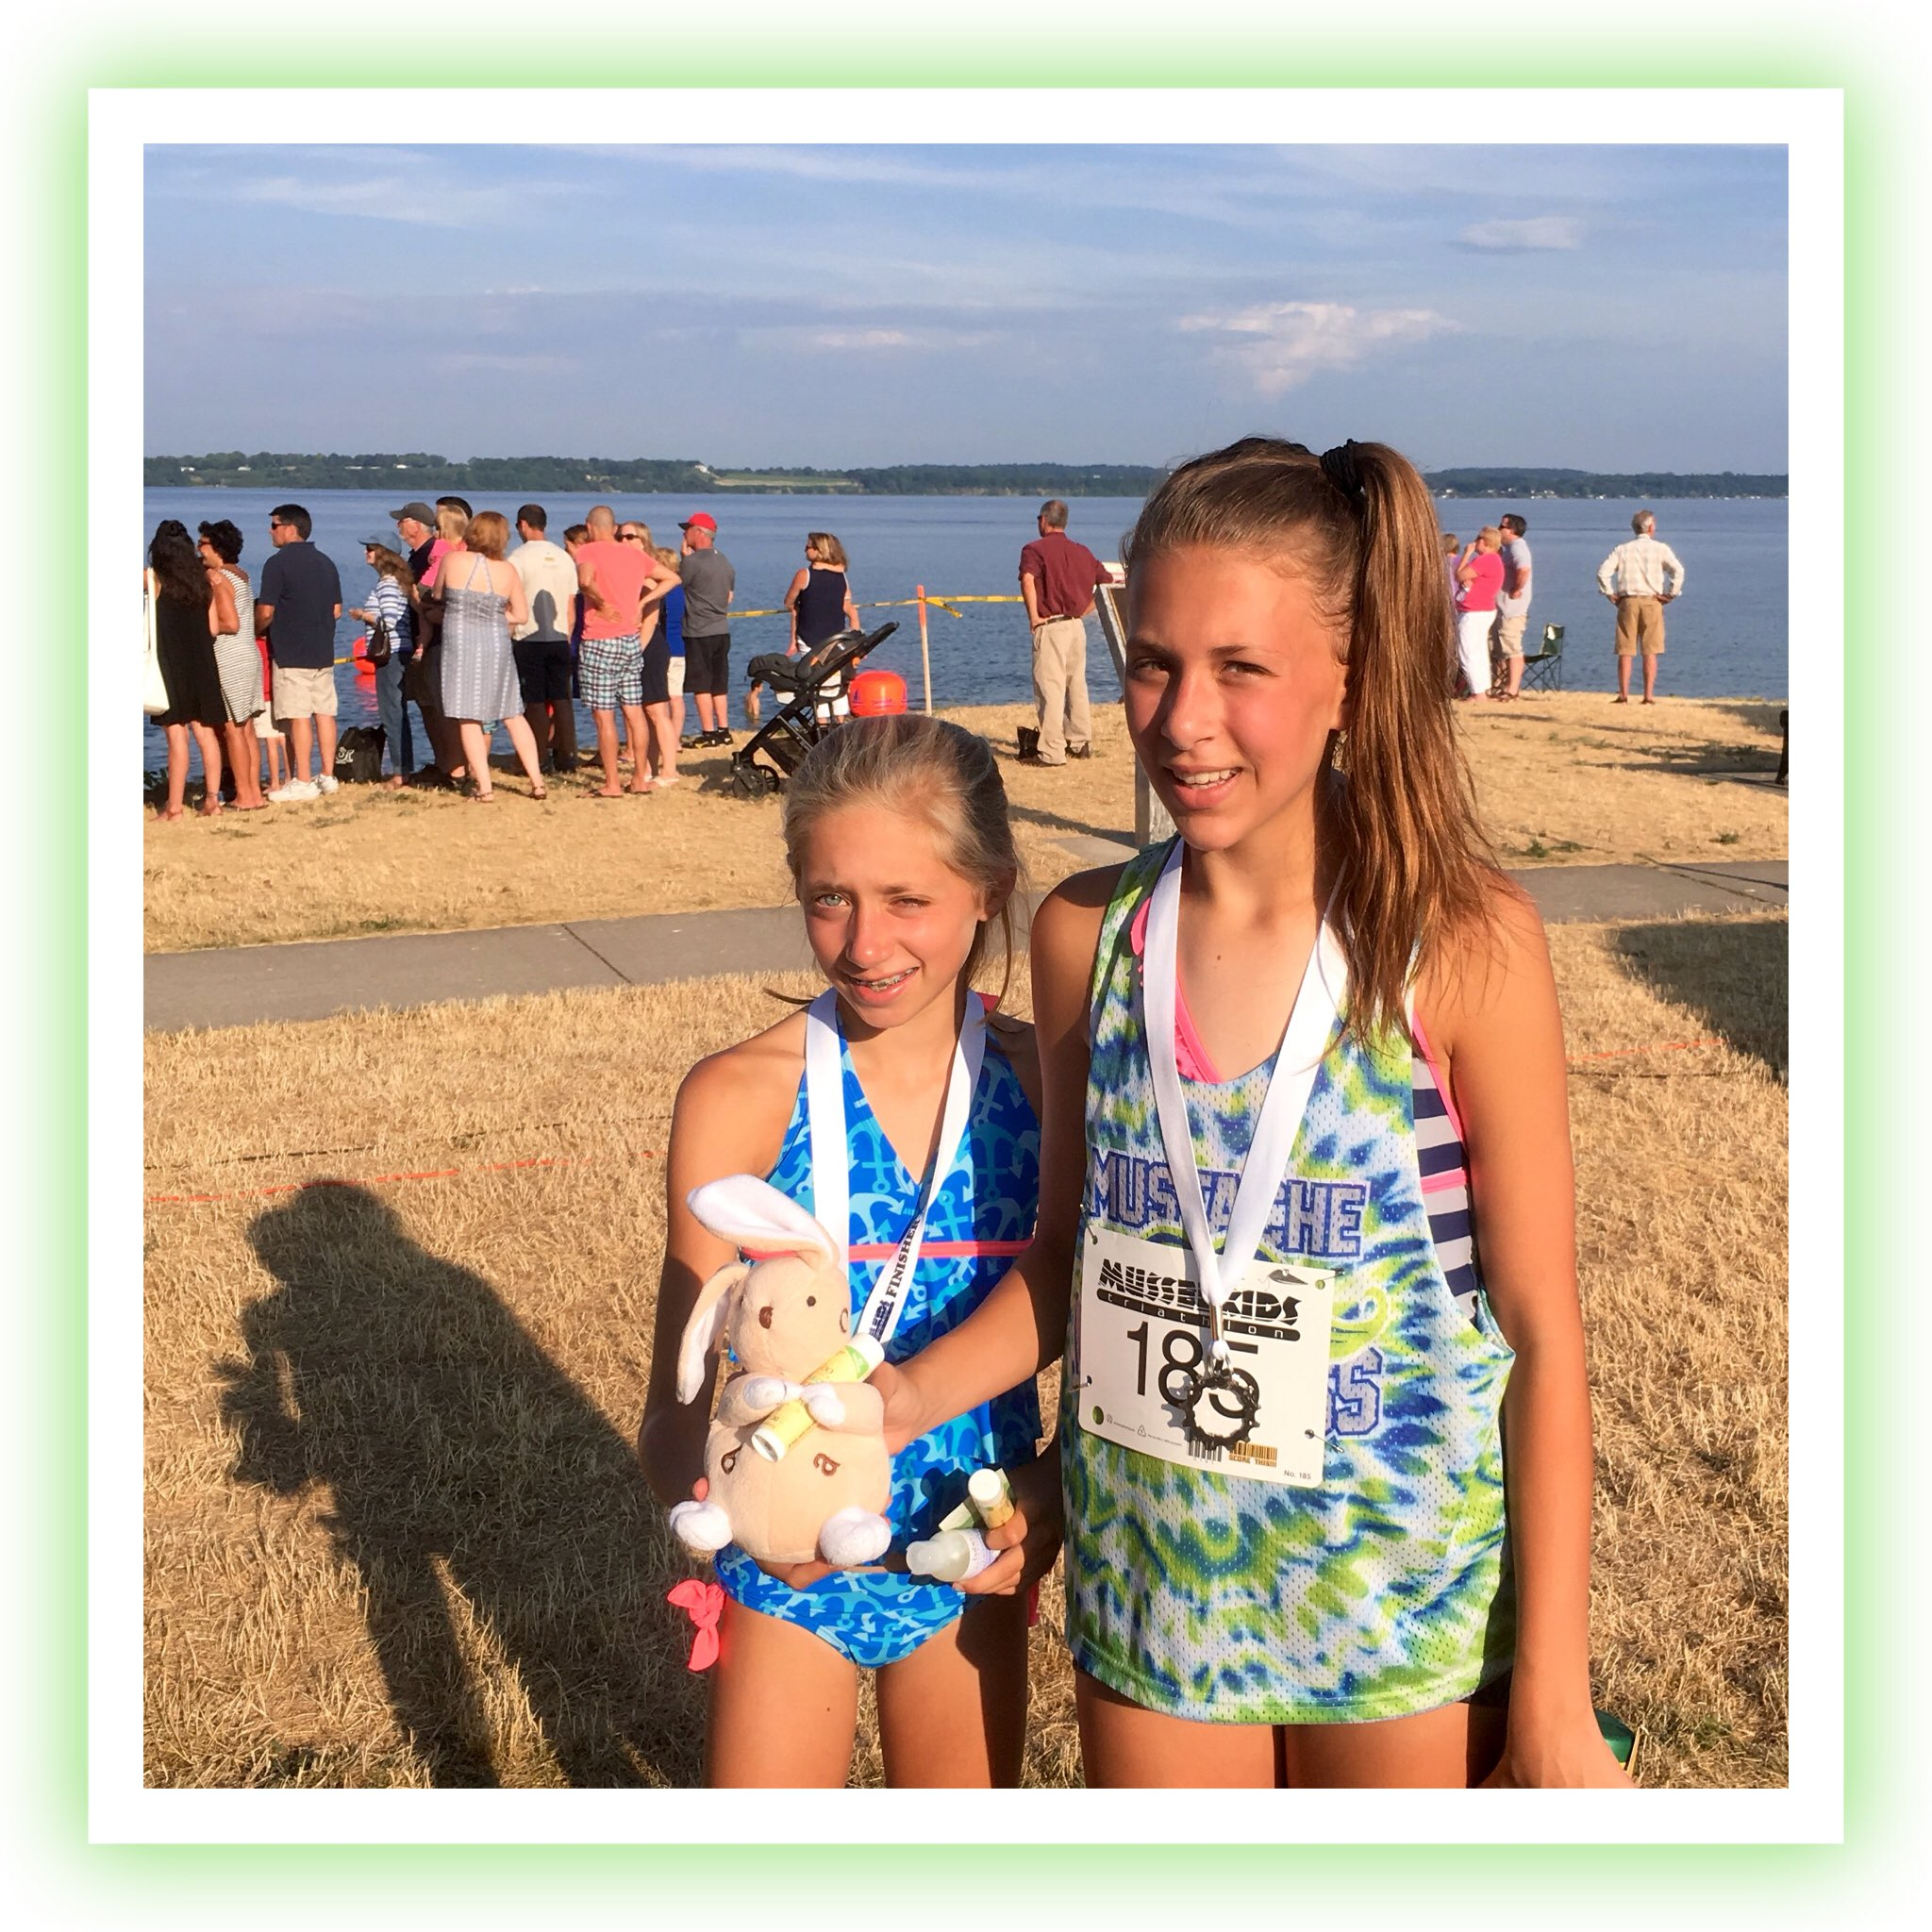 Everyone is a winner at the @musselmantri #Musselman2016 Kids Day! #sponsor #bringyourbabo https://t.co/4T5j3MhJ8G